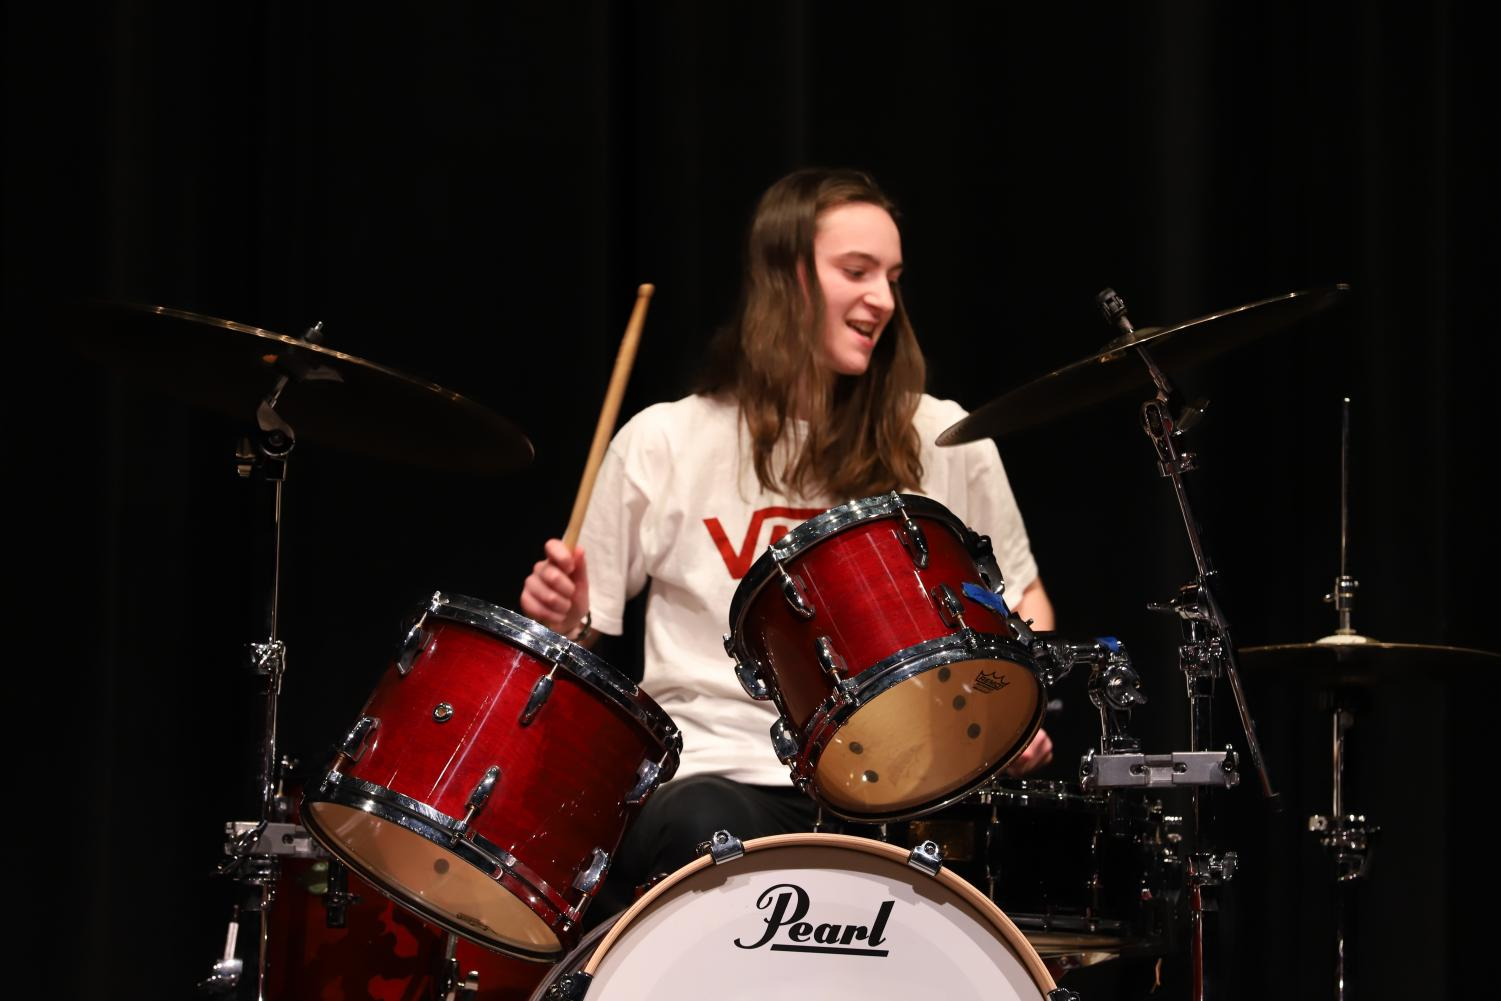 Katie Harrison performs an action-packed drumming piece.